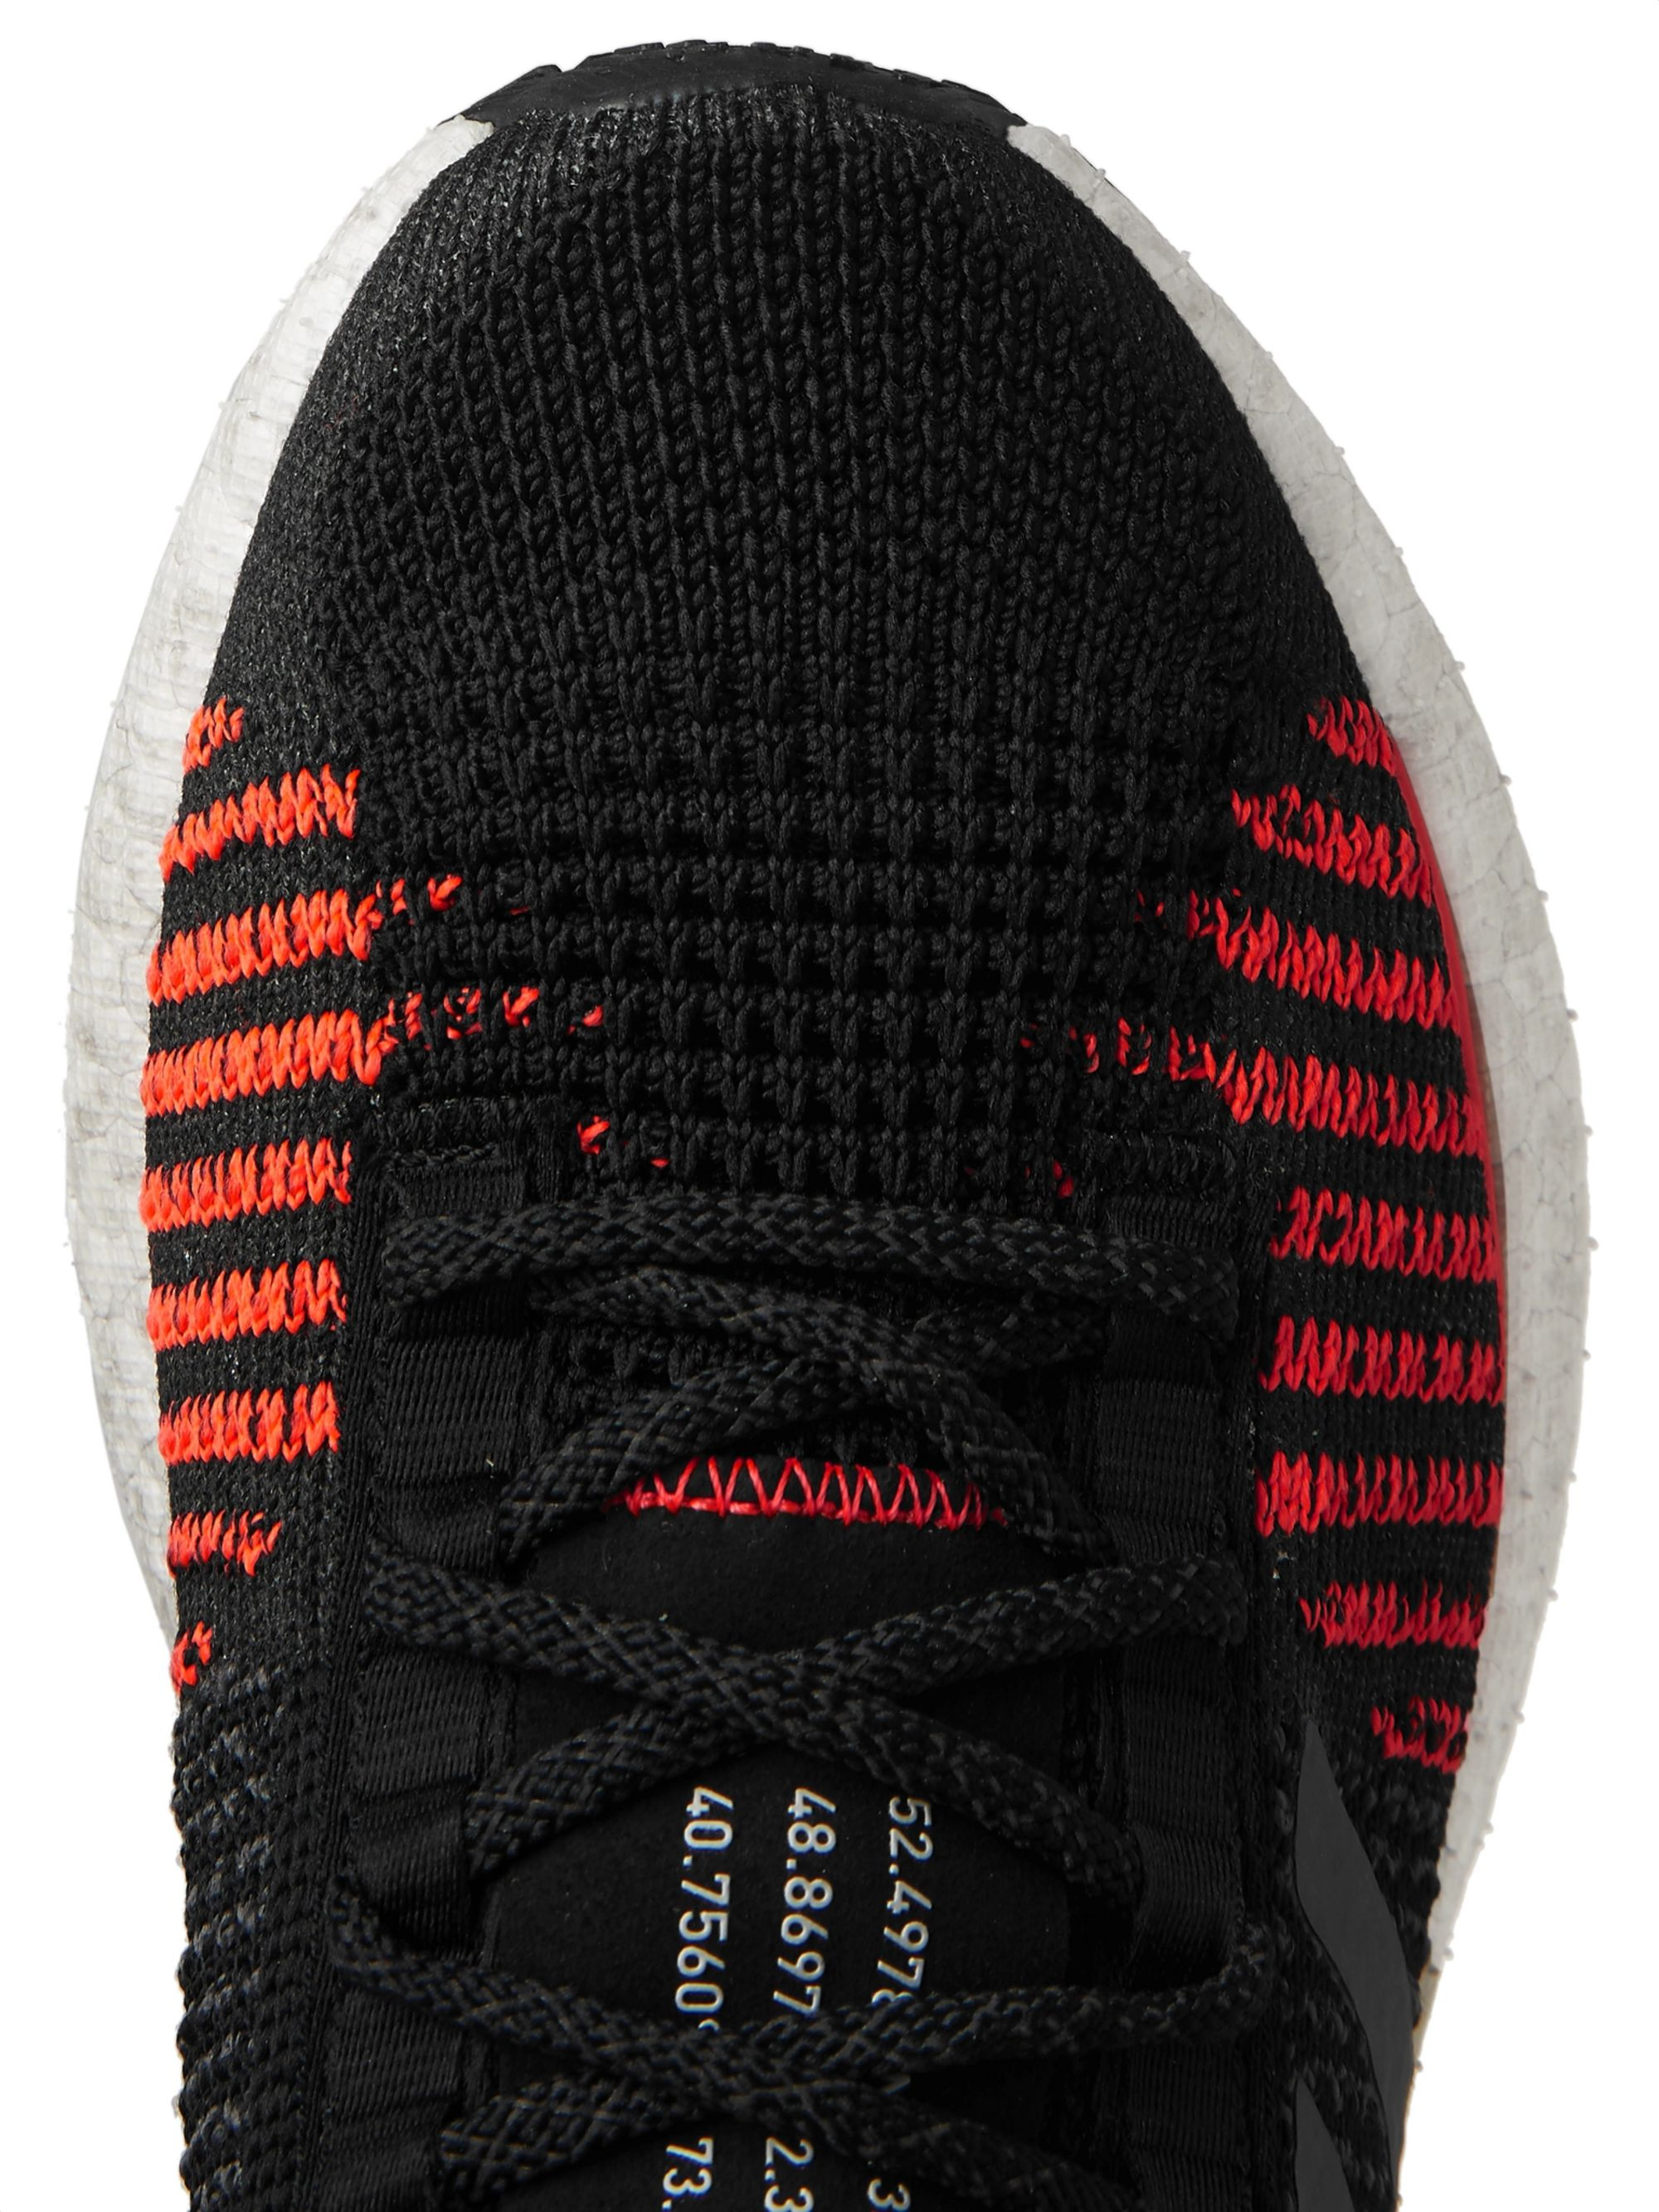 Adidas Sport Pulseboost HD Adapt Knit Sneakers